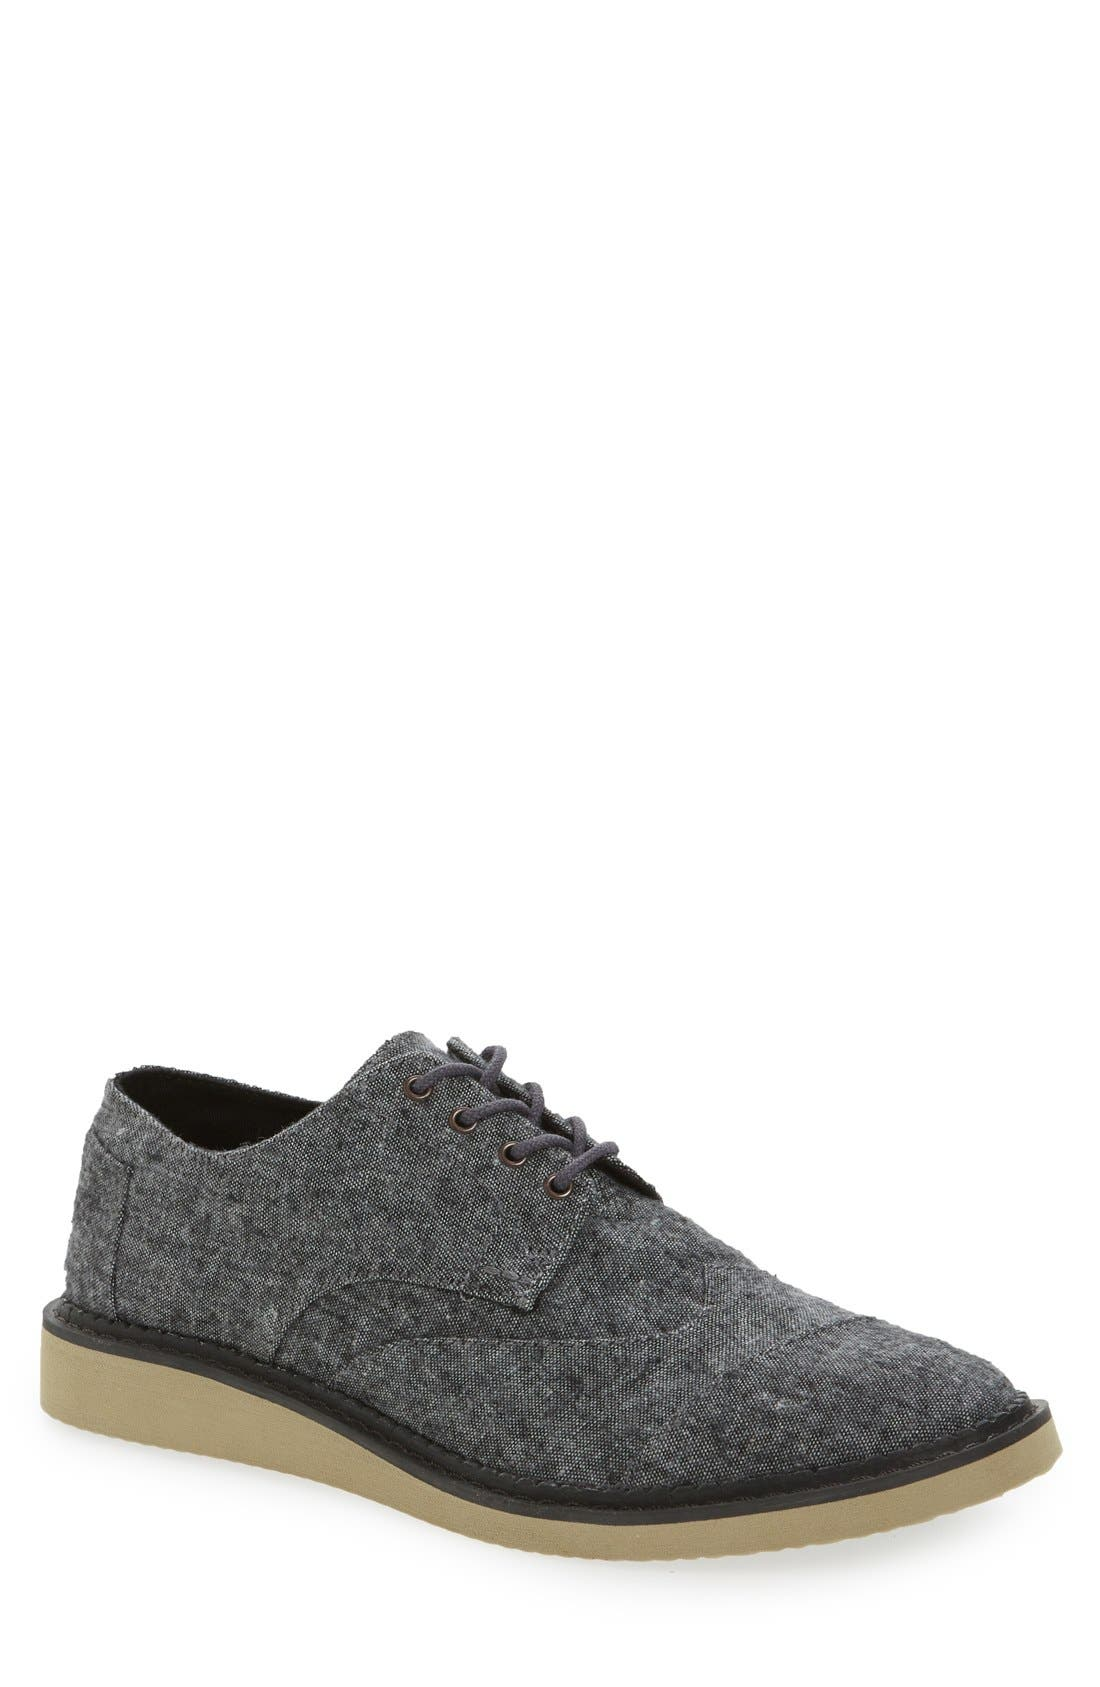 'Classic Brogue' Cotton Twill Derby,                             Alternate thumbnail 51, color,